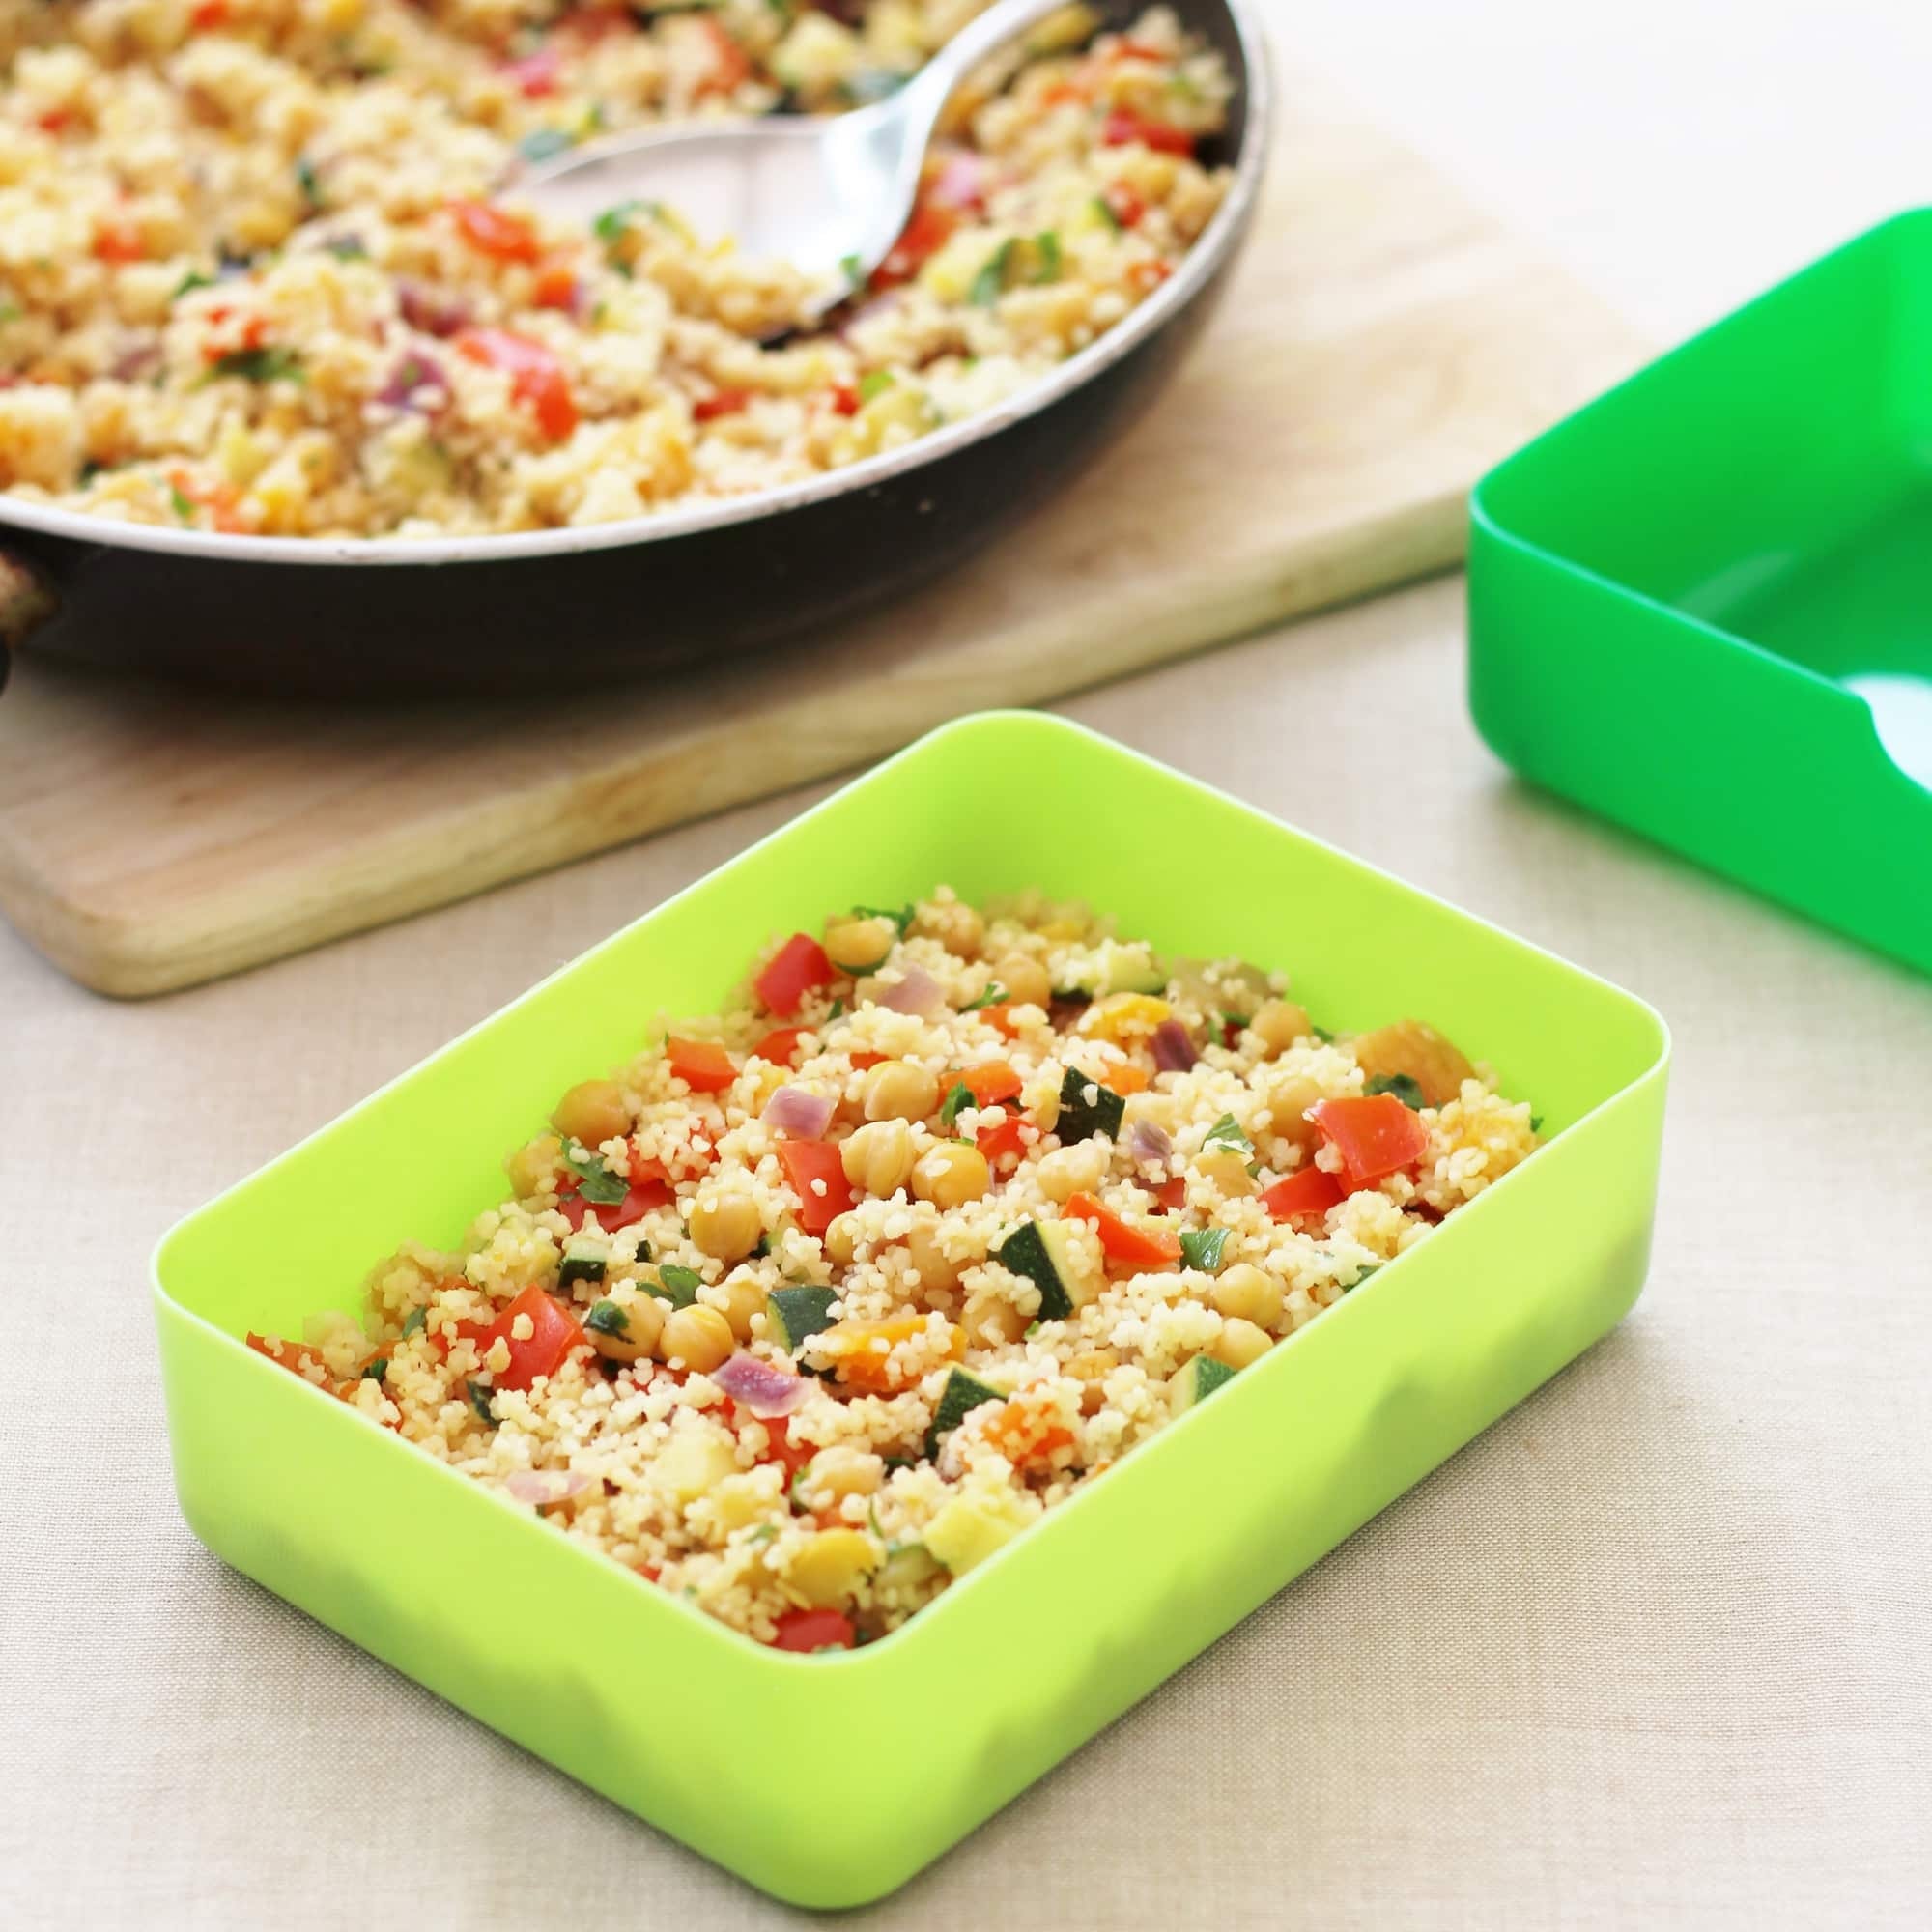 30 Stress Free Easy Camping Food Ideas Your Family Will: Chickpea And Apricot Couscous Salad For The #FloraLunchbox